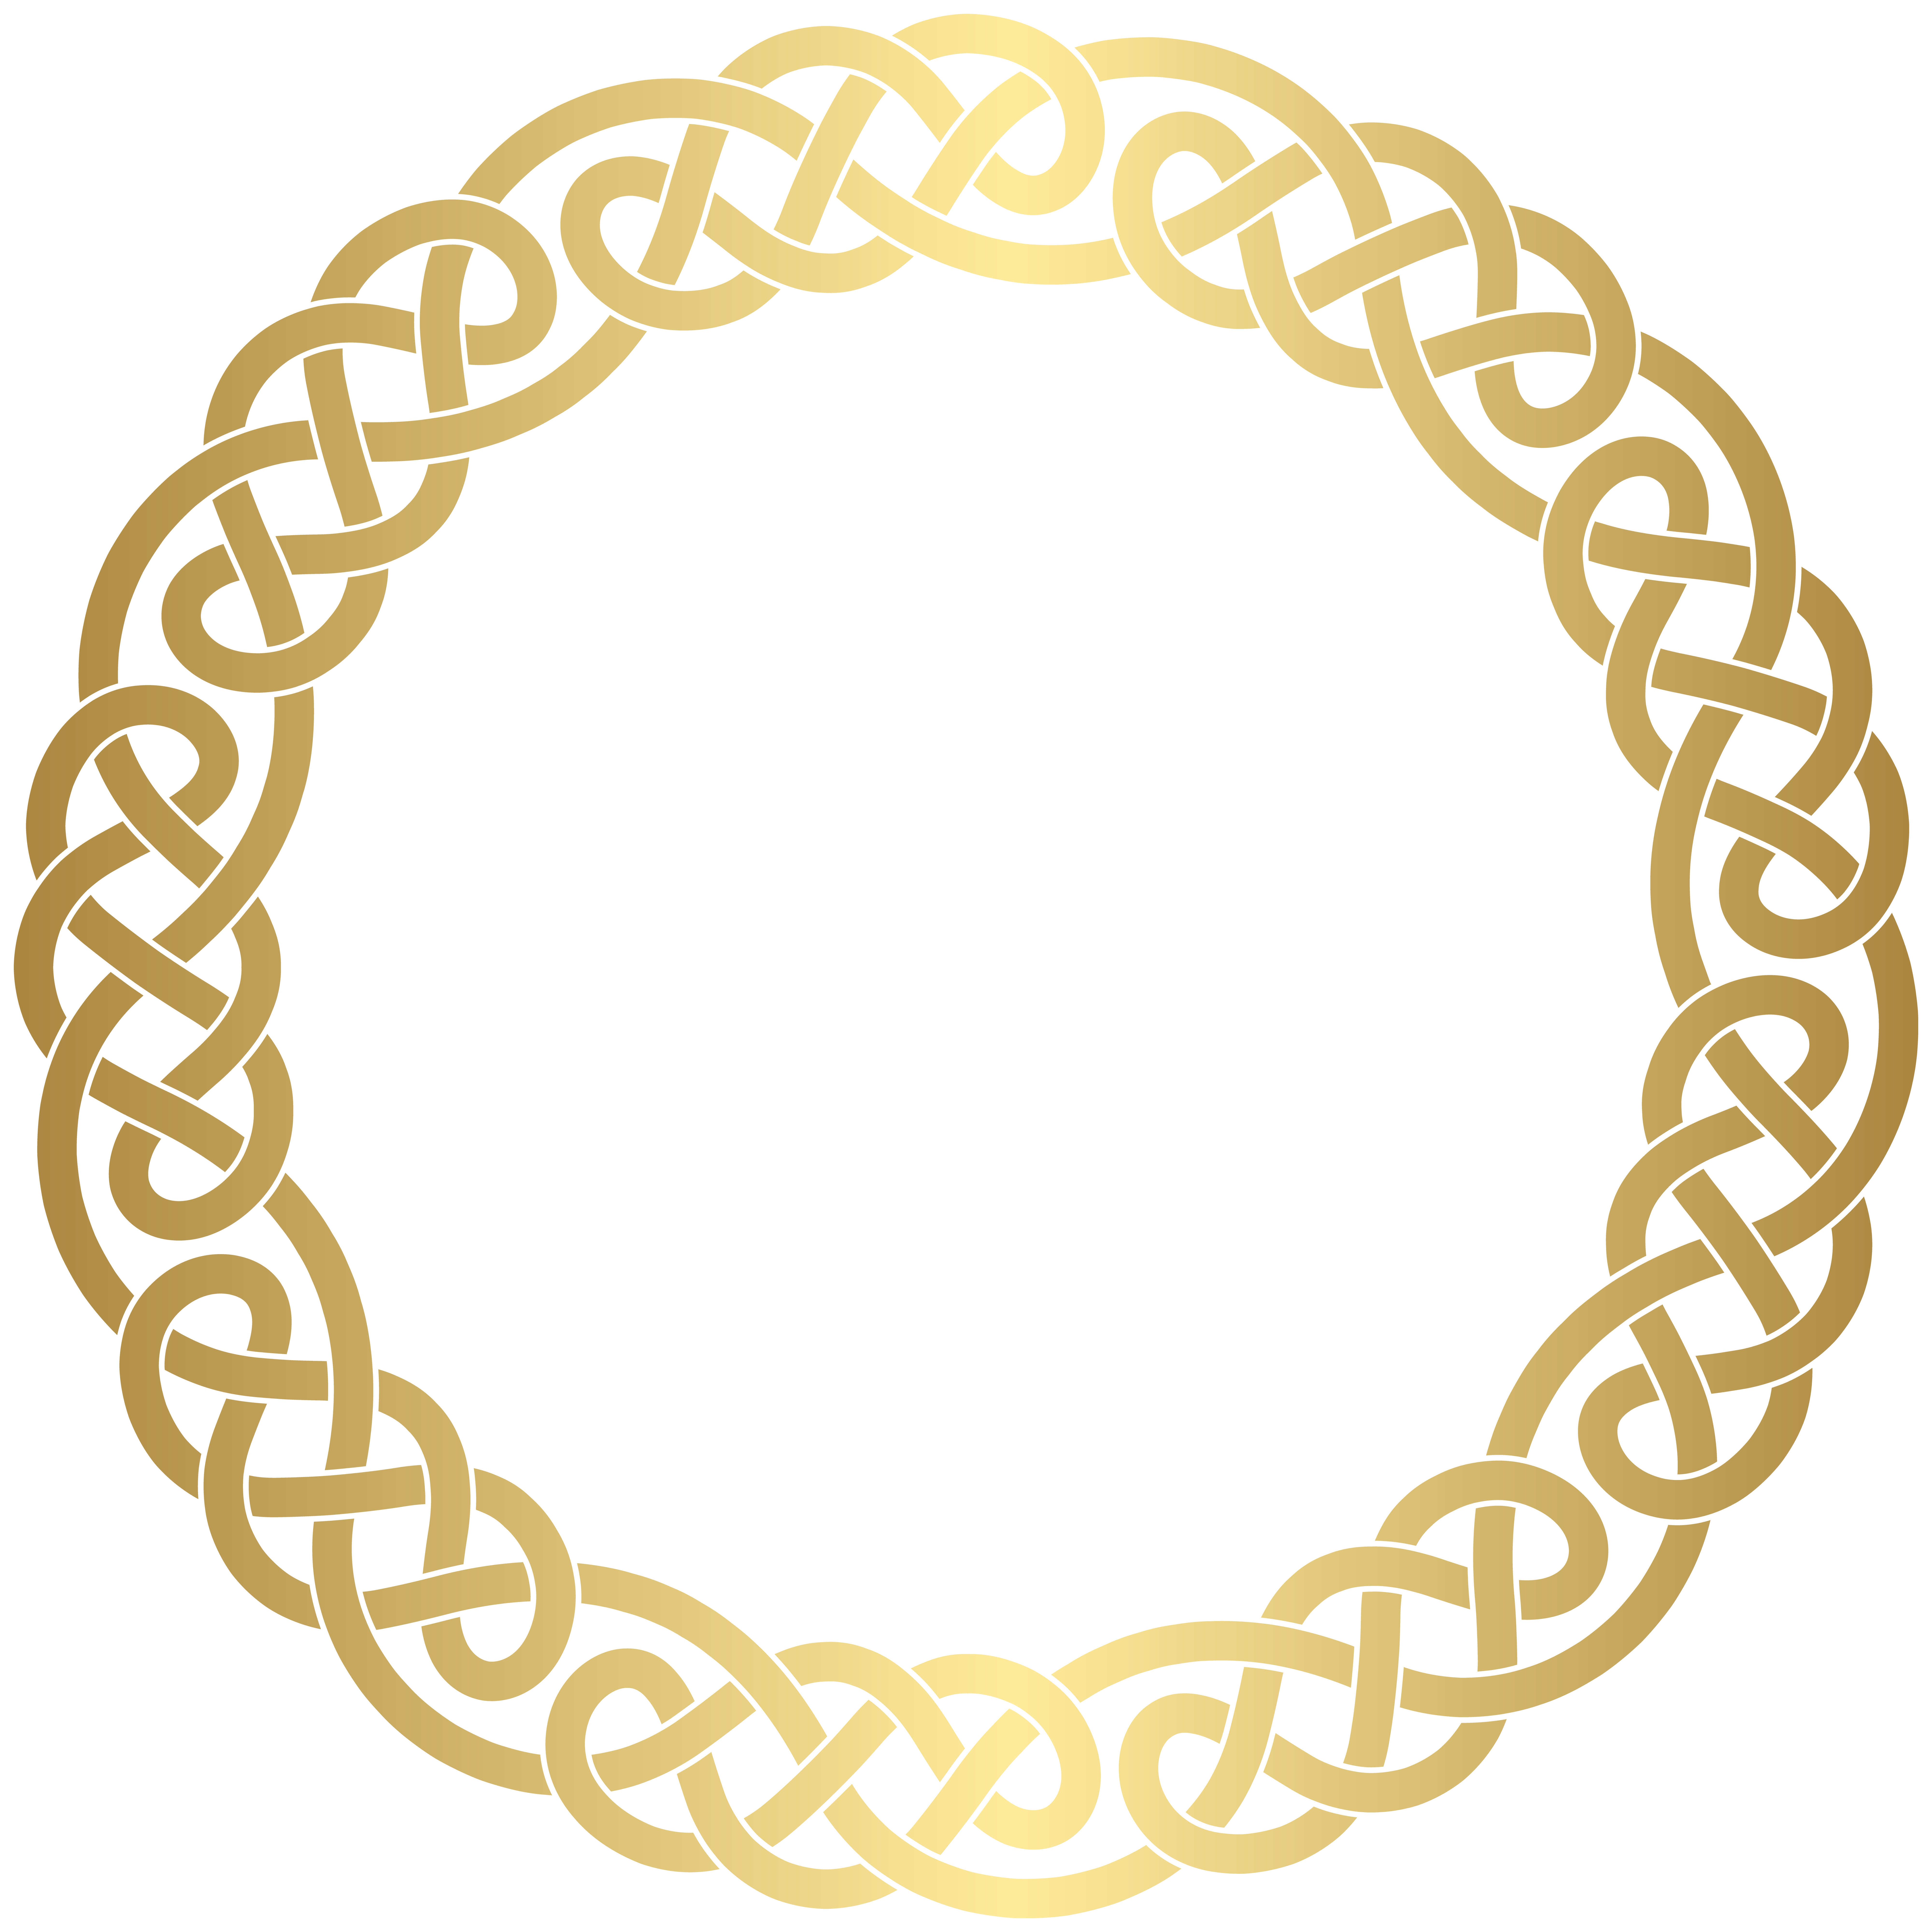 Round Border Frame Png Clip Art Gallery Yopriceville High Quality Images And Transparent Png Free Clipart Clip Art Free Clip Art Art Deco Pictures